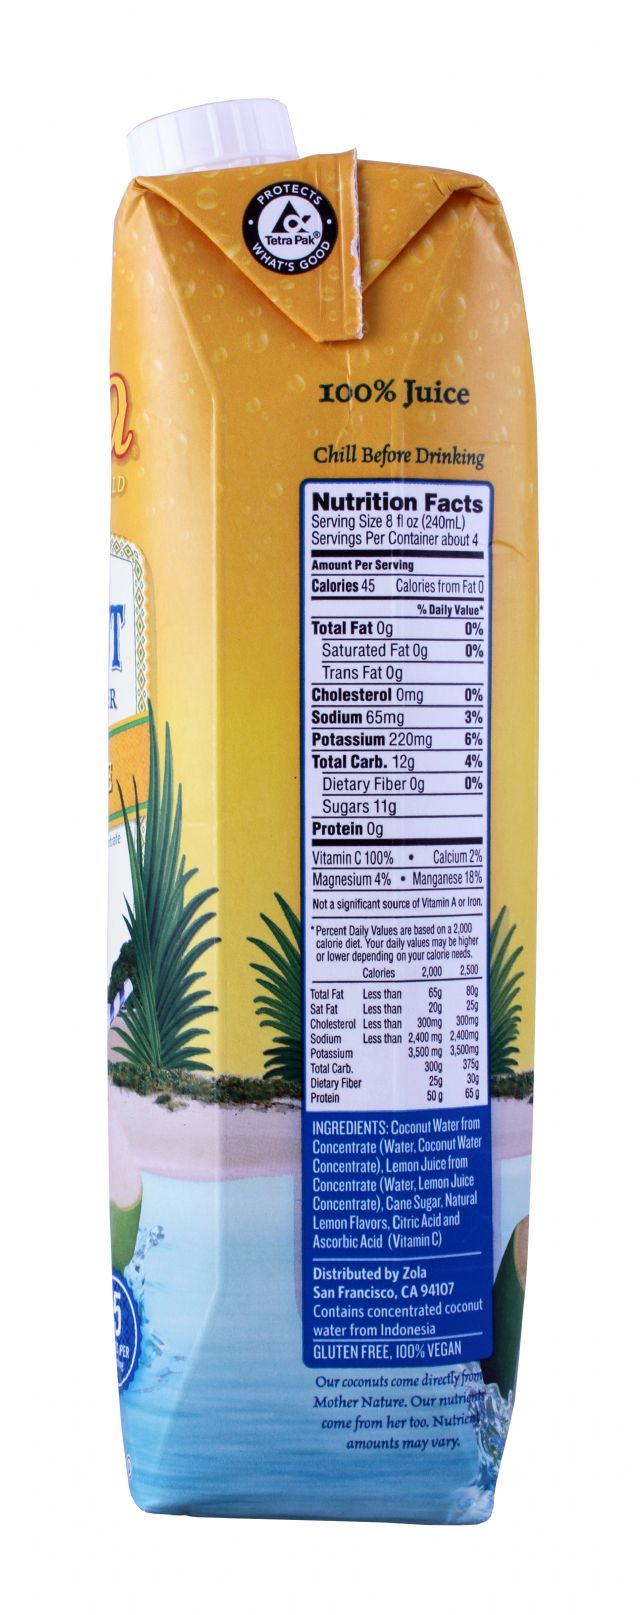 Zola Coconut Water: Zola Lemonade Facts